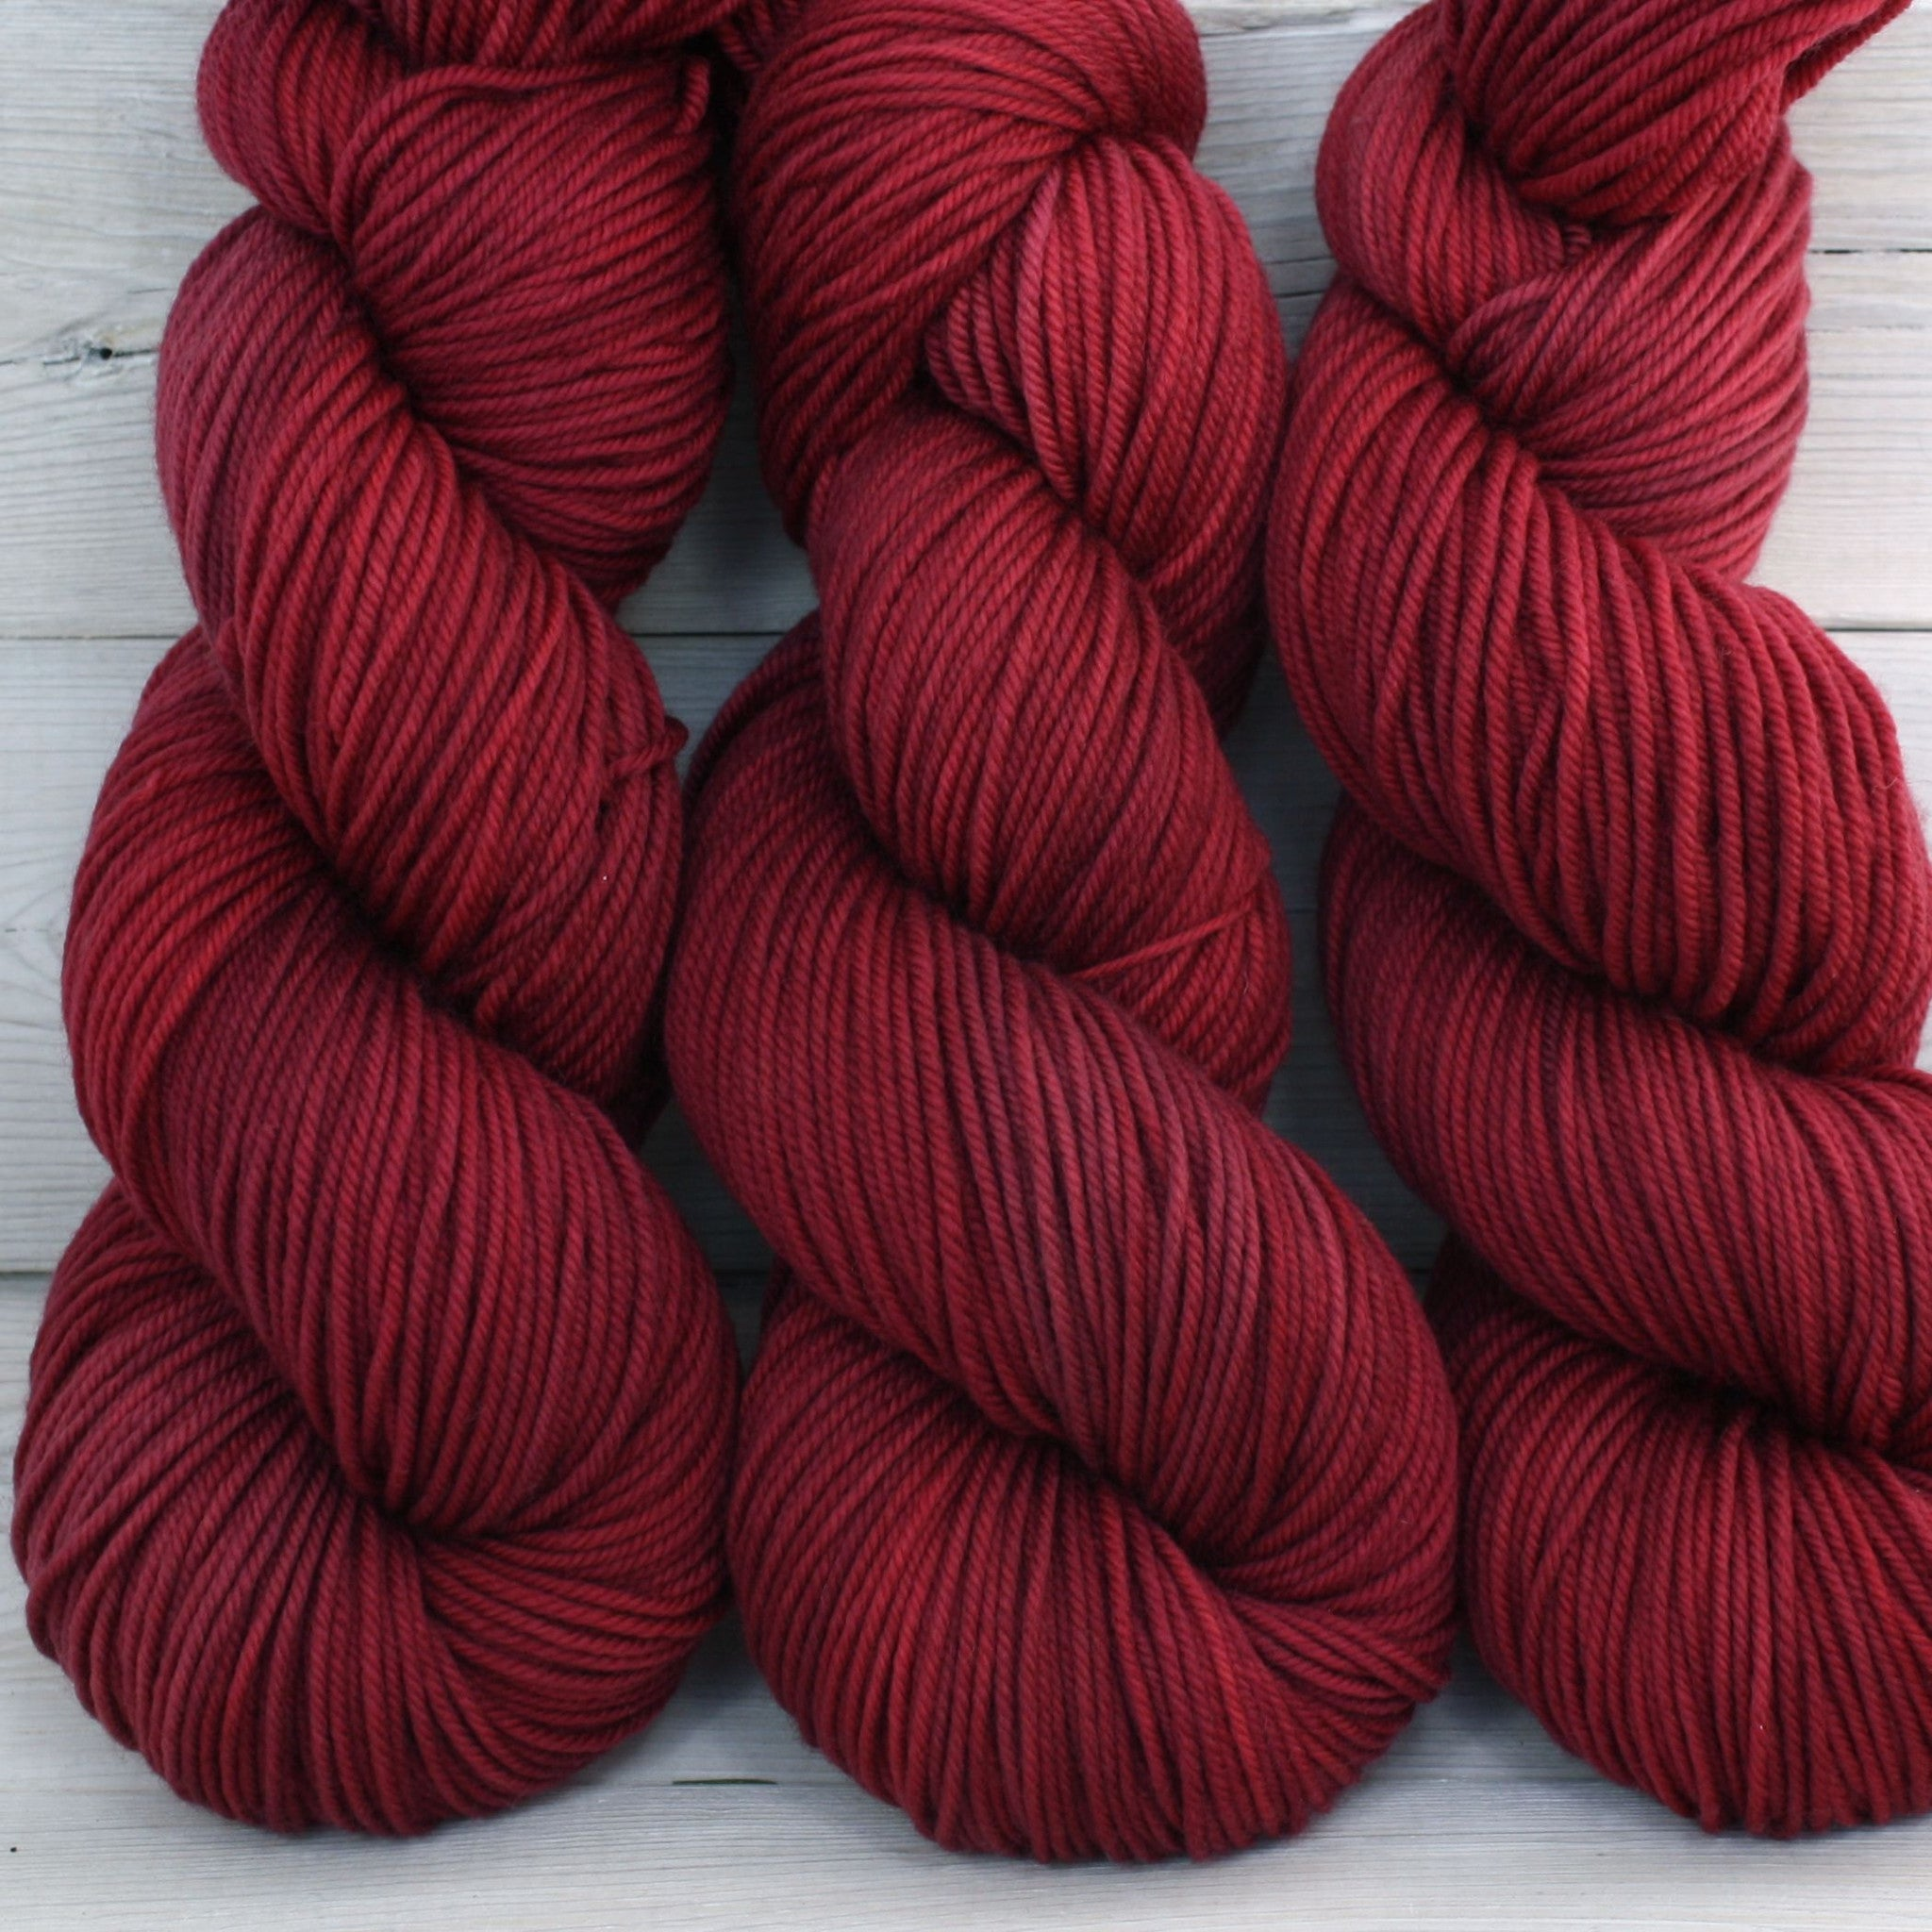 Calypso Yarn | Colorway: Cranberry